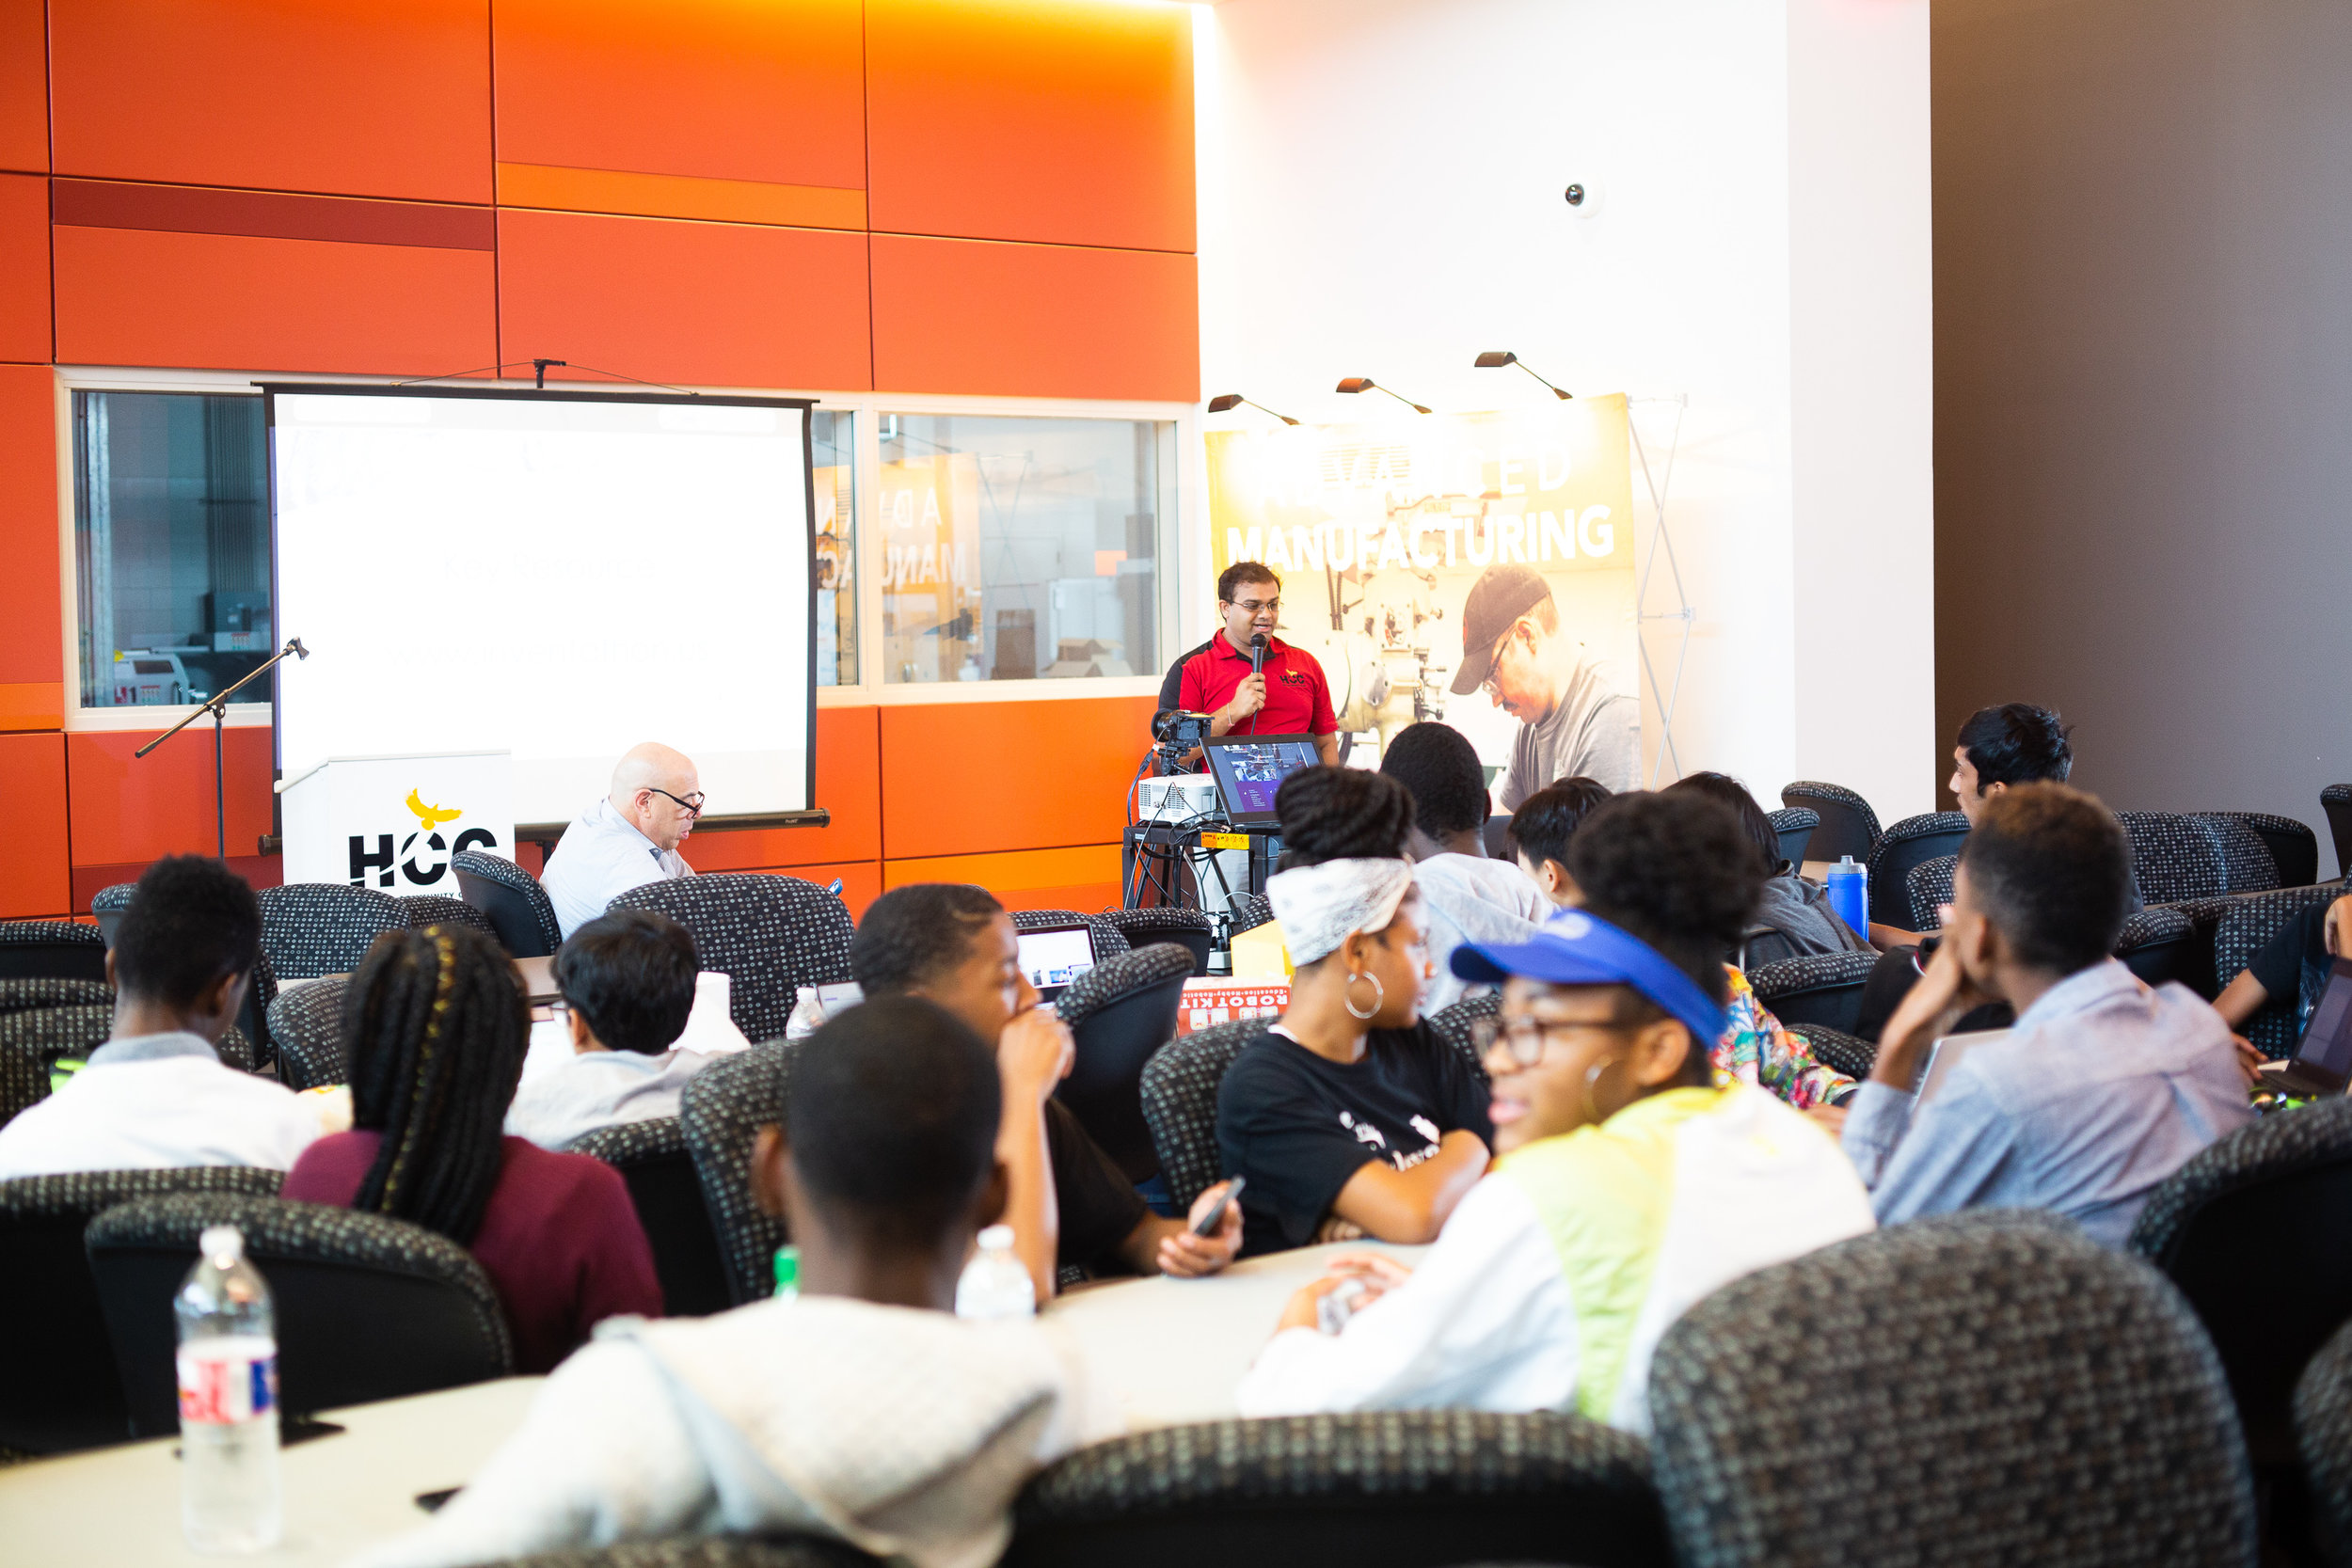 Ravi Brahmbhatt, Director of Student Innovation introduces students to the hackathon format at HCC Southwest Advanced Manufacturing Center. Code Park is excited to have supported the event with mentoring and volunteering. Courtesy of Wanjun Zhang. September 22nd, 2018.